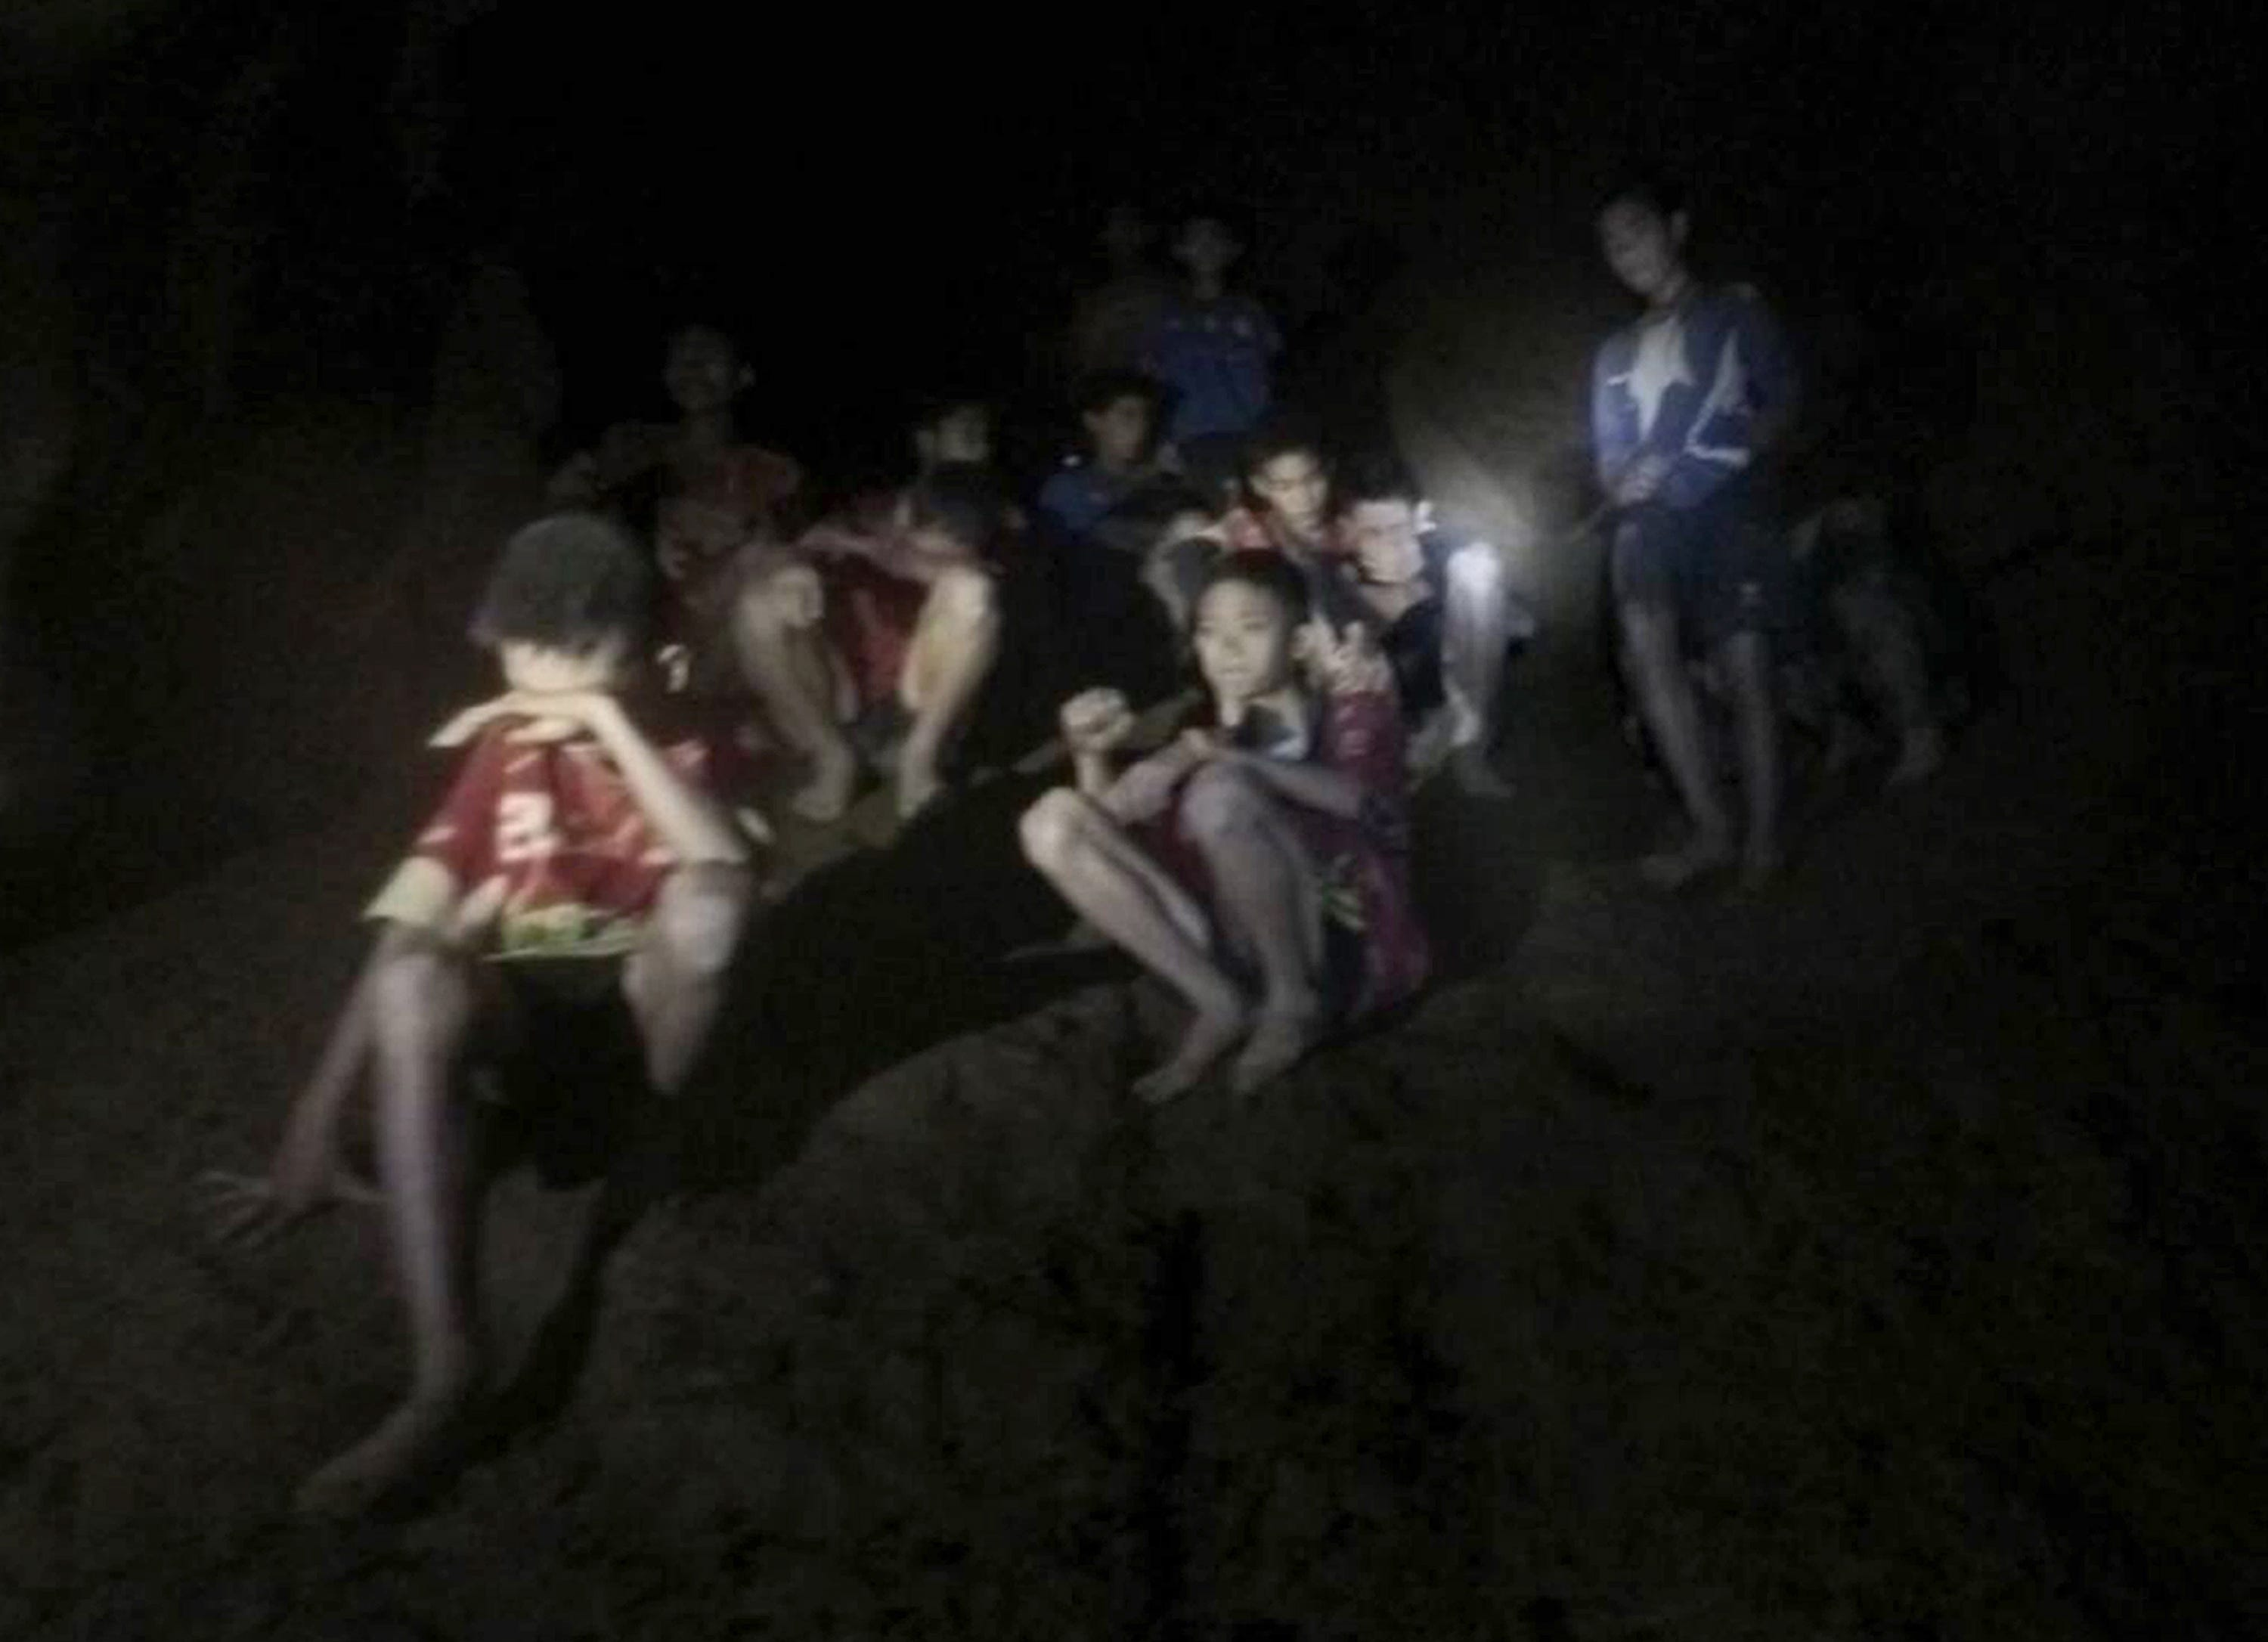 Thai cave: 8 boys freed from Tham Luang in 2 days of rescues recommend